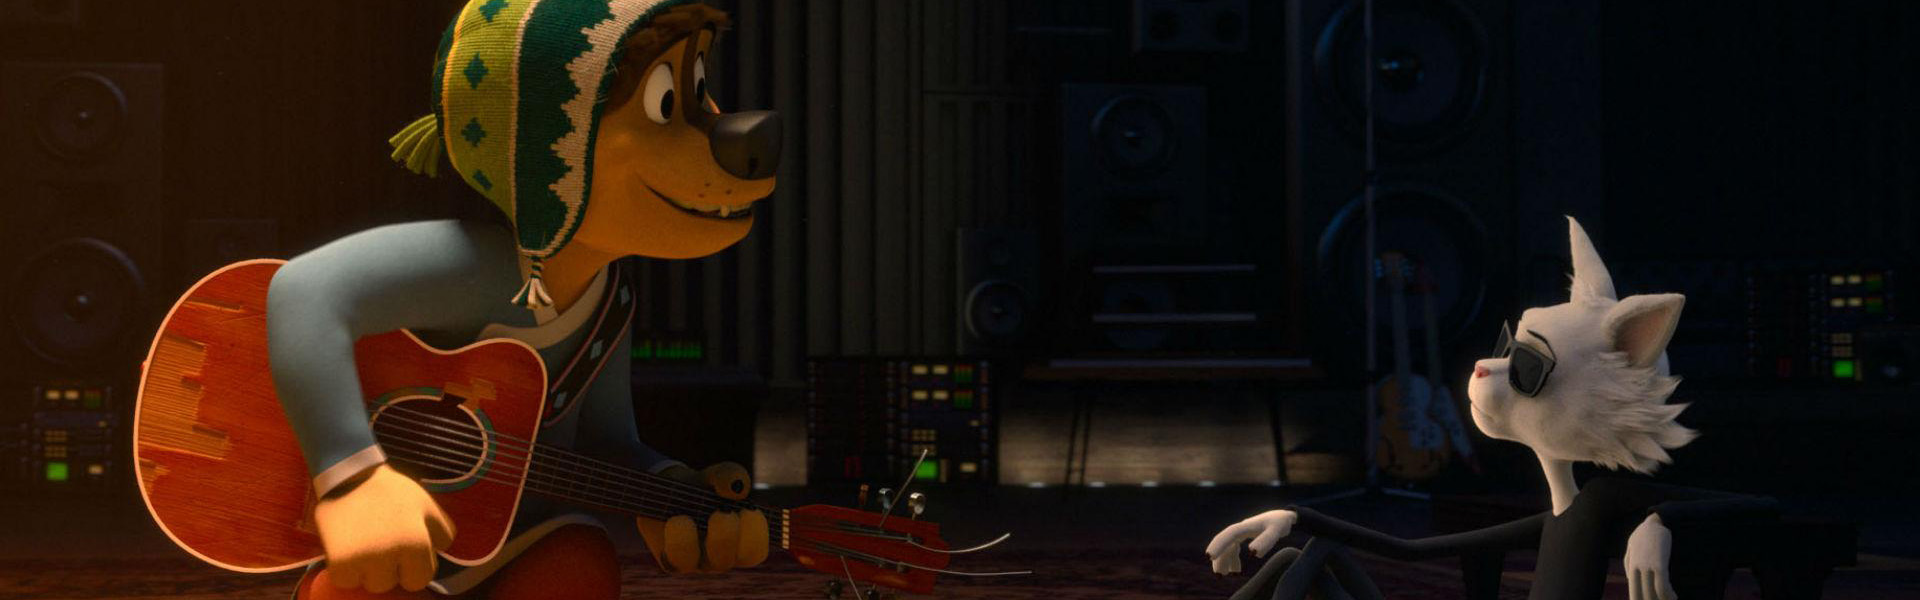 Rock Dog. Pies ma głos! 3D <span>(dubbing)</span>